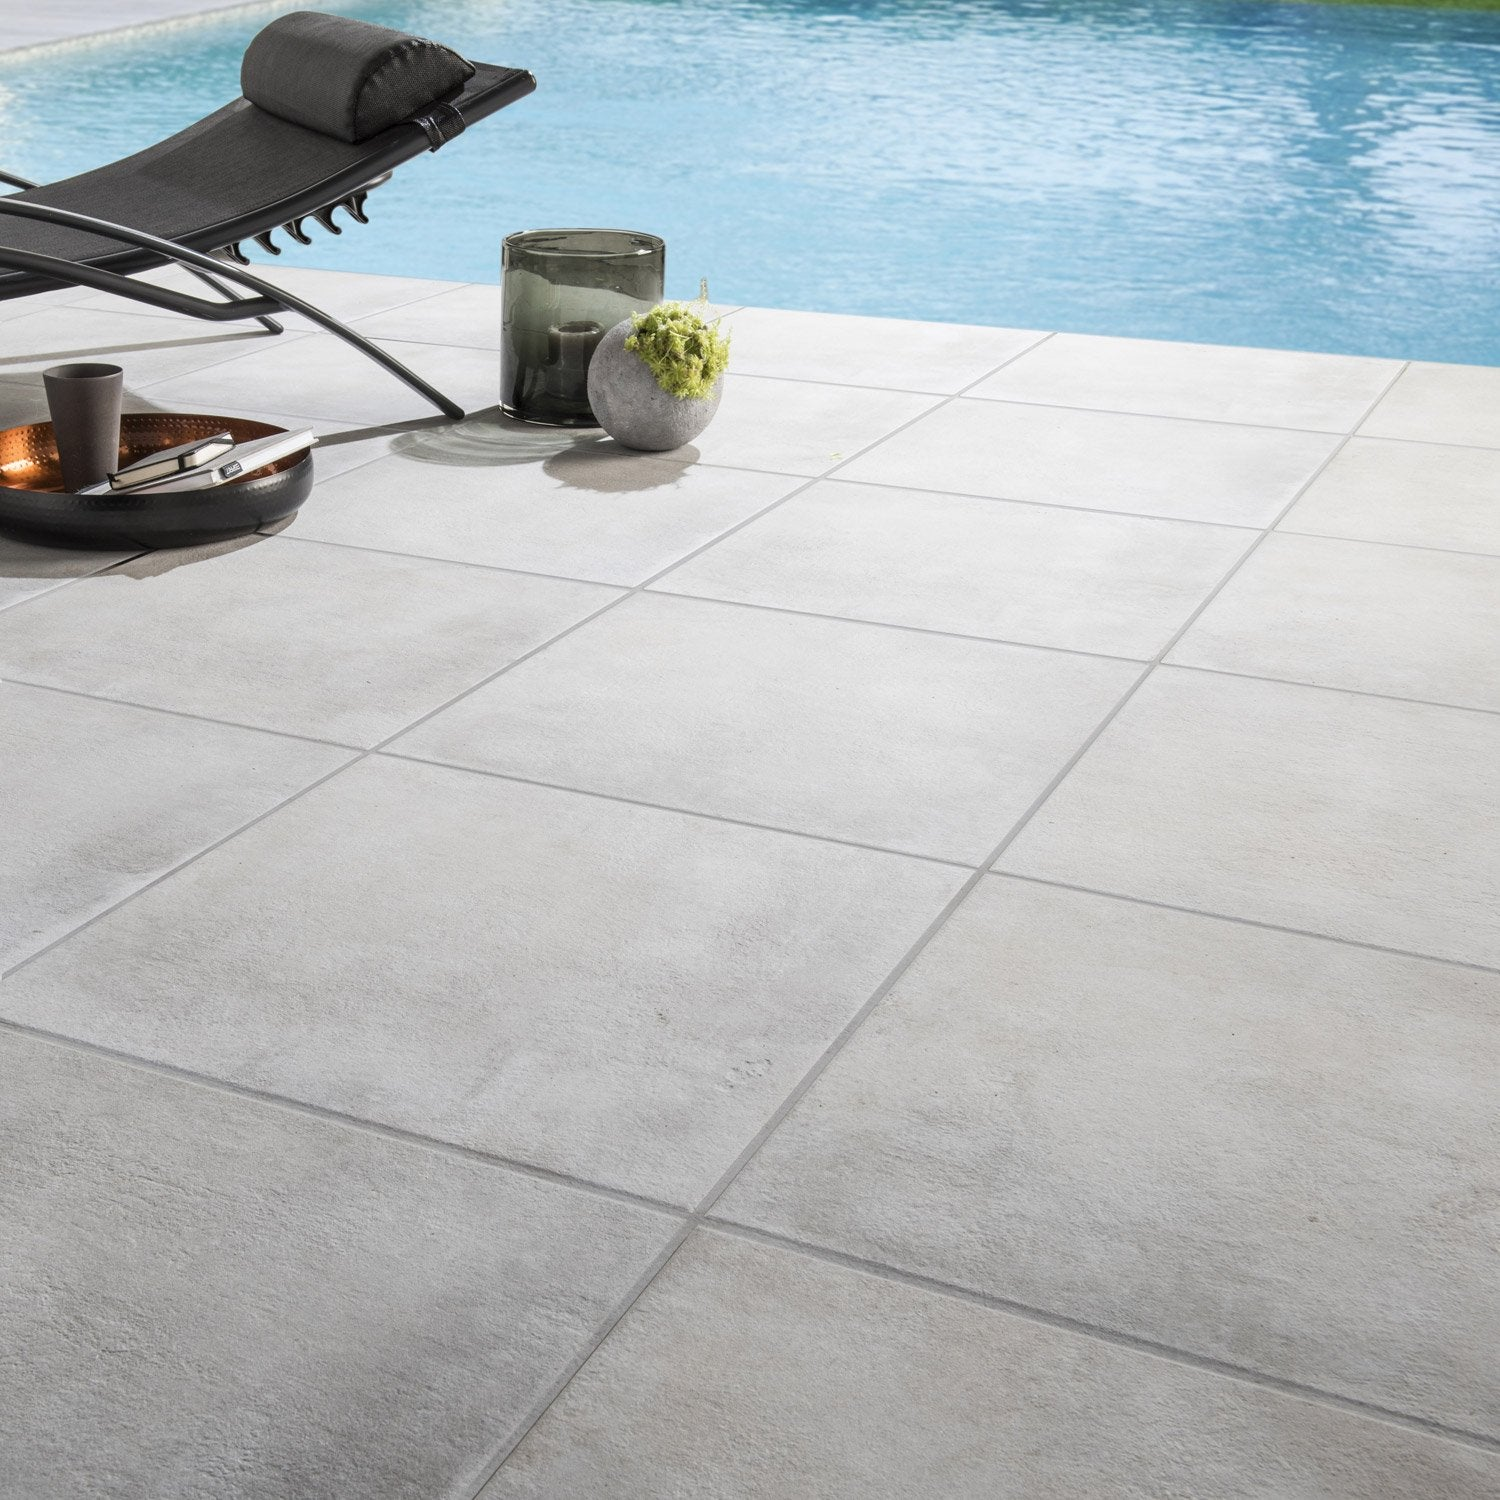 Carrelage sol perle effet pierre dolce vita x for Carrelage grand carreaux gris